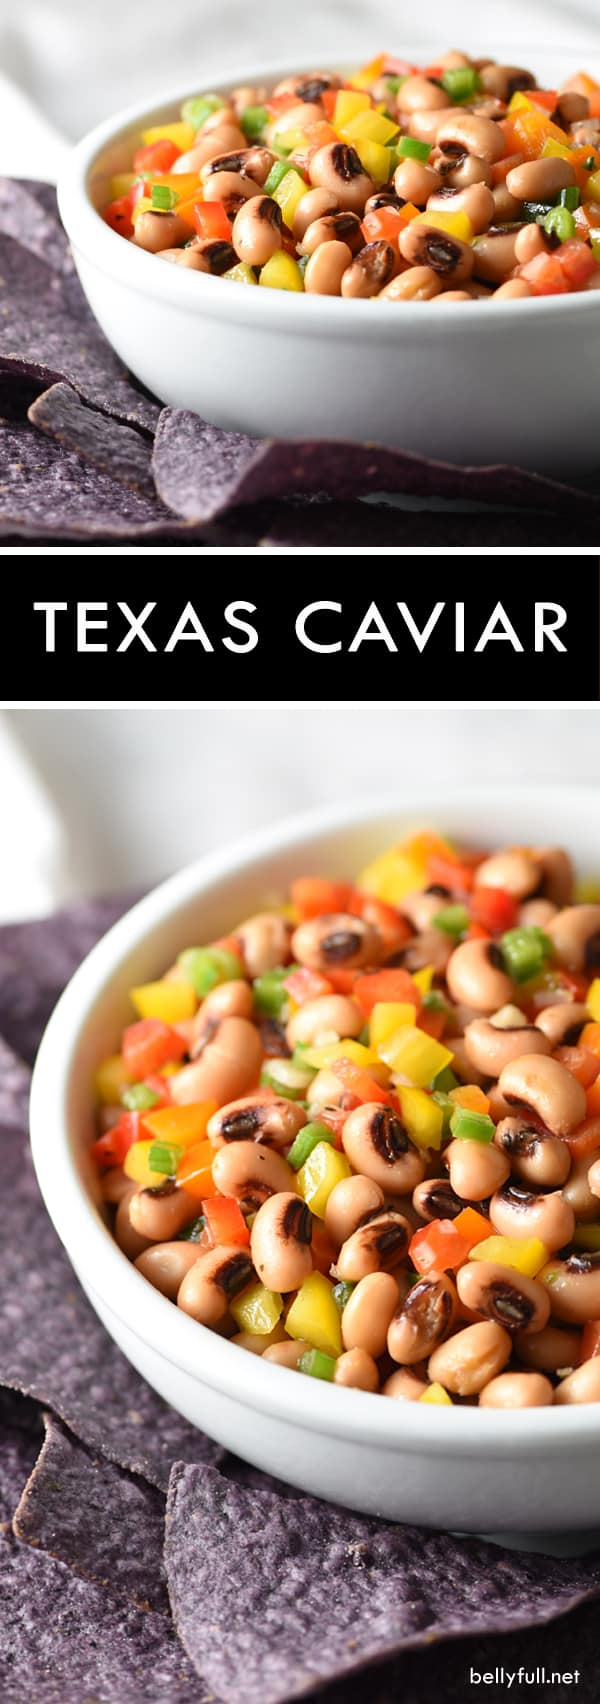 This Texas Caviar is a cross between a salad and a dip, made up of black-eyed peas and colorful bell peppers, lightly pickled in a vinaigrette dressing and served with blue corn tortilla chips!